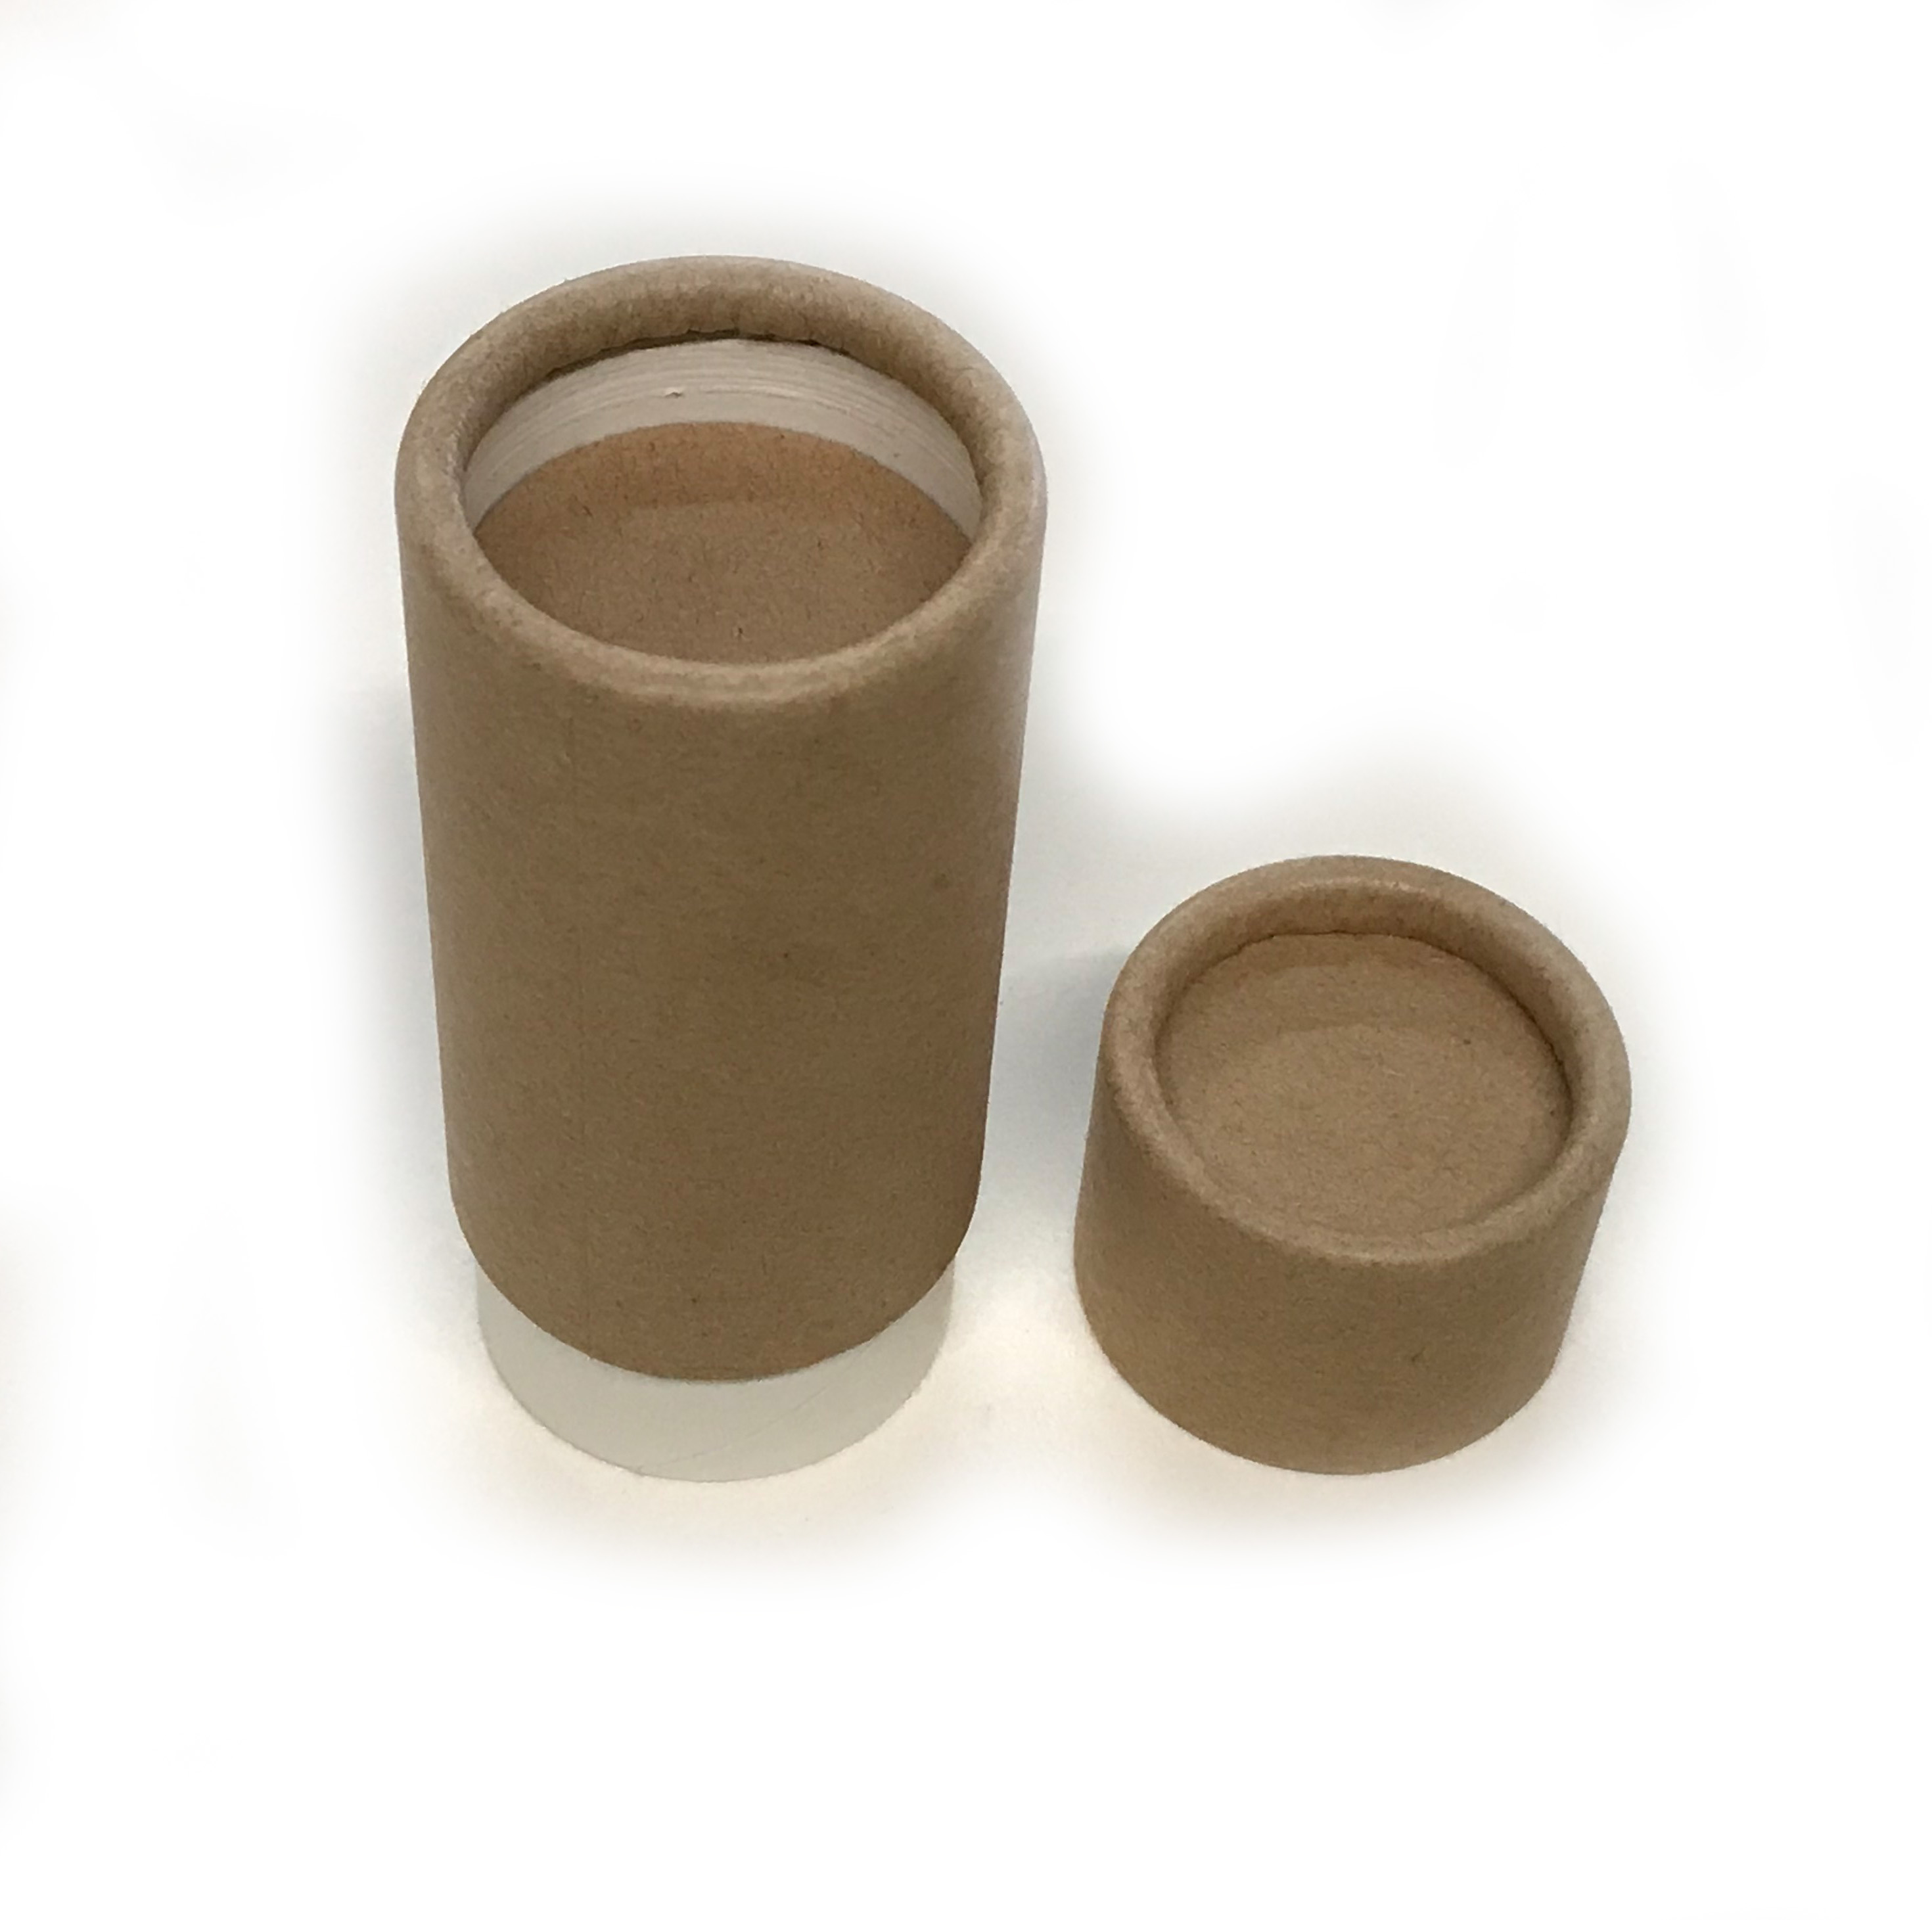 - FREE SHIPPING - Empty Cardboard Deodorant Containers, Biodegradable,  Top-Fill, Push-Up (Style #1)